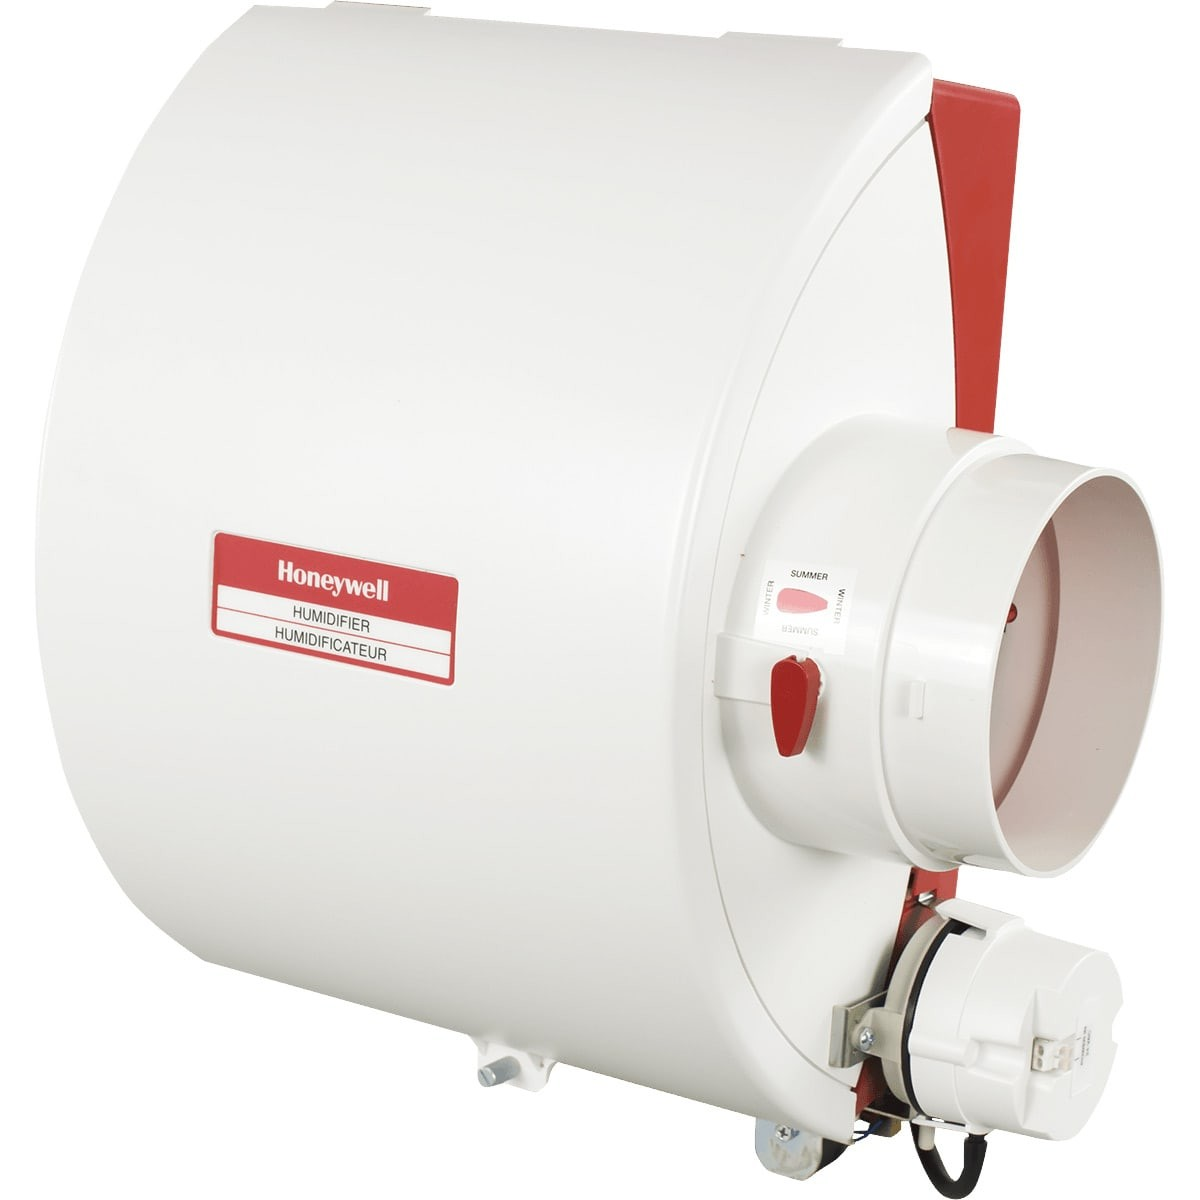 Drum Humidifier Is A Great Choice. These Humidifiers Work With A Central Air  System   And Install Onto Your HVAC Unit And Directly Connect To The Water  Line ...